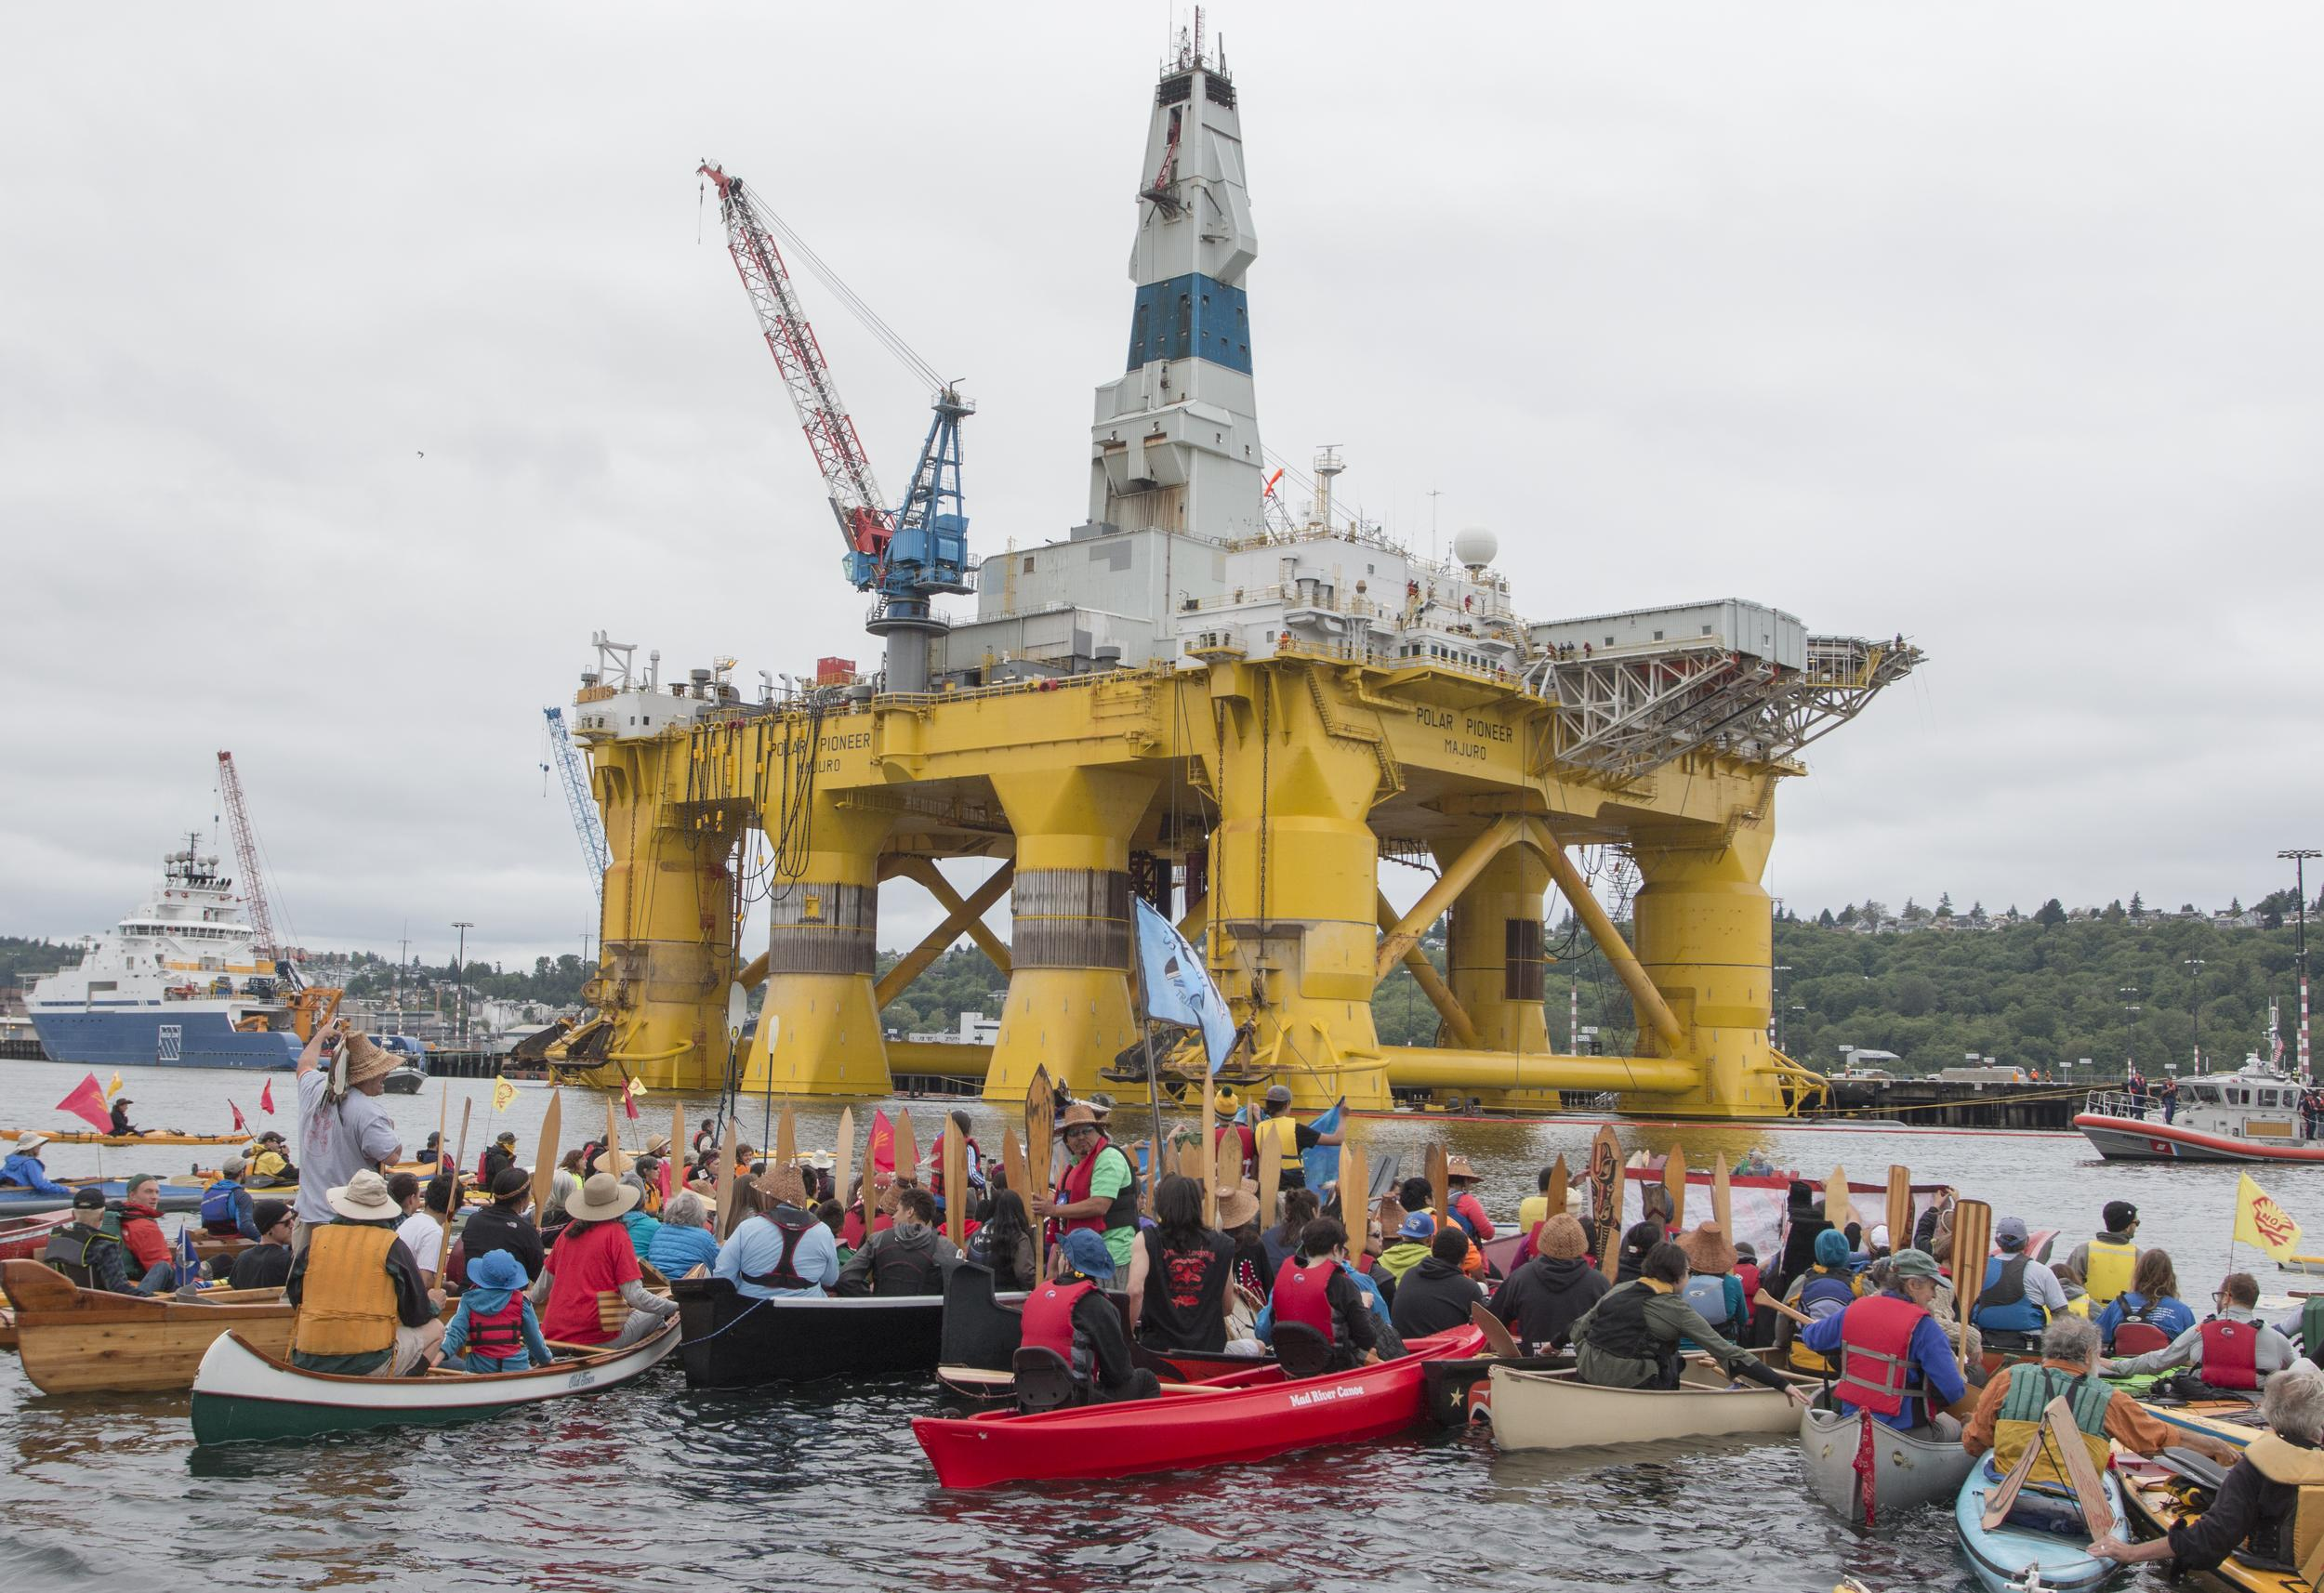 Small boats and kayaks surround a big oil rig